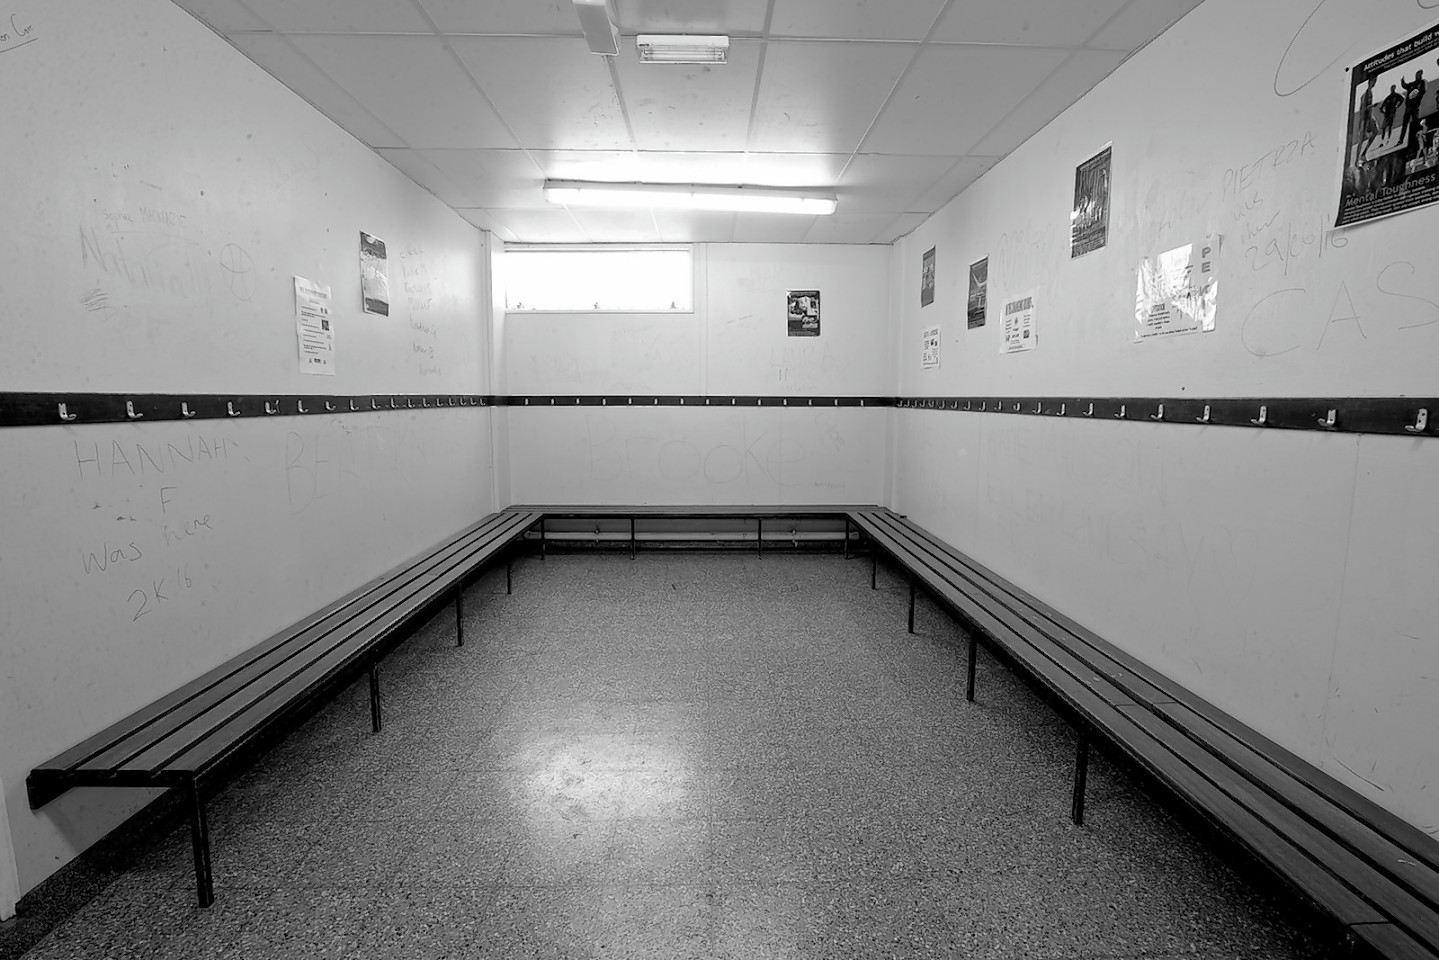 Inverness Royal Academy sports changing rooms 1977-2016